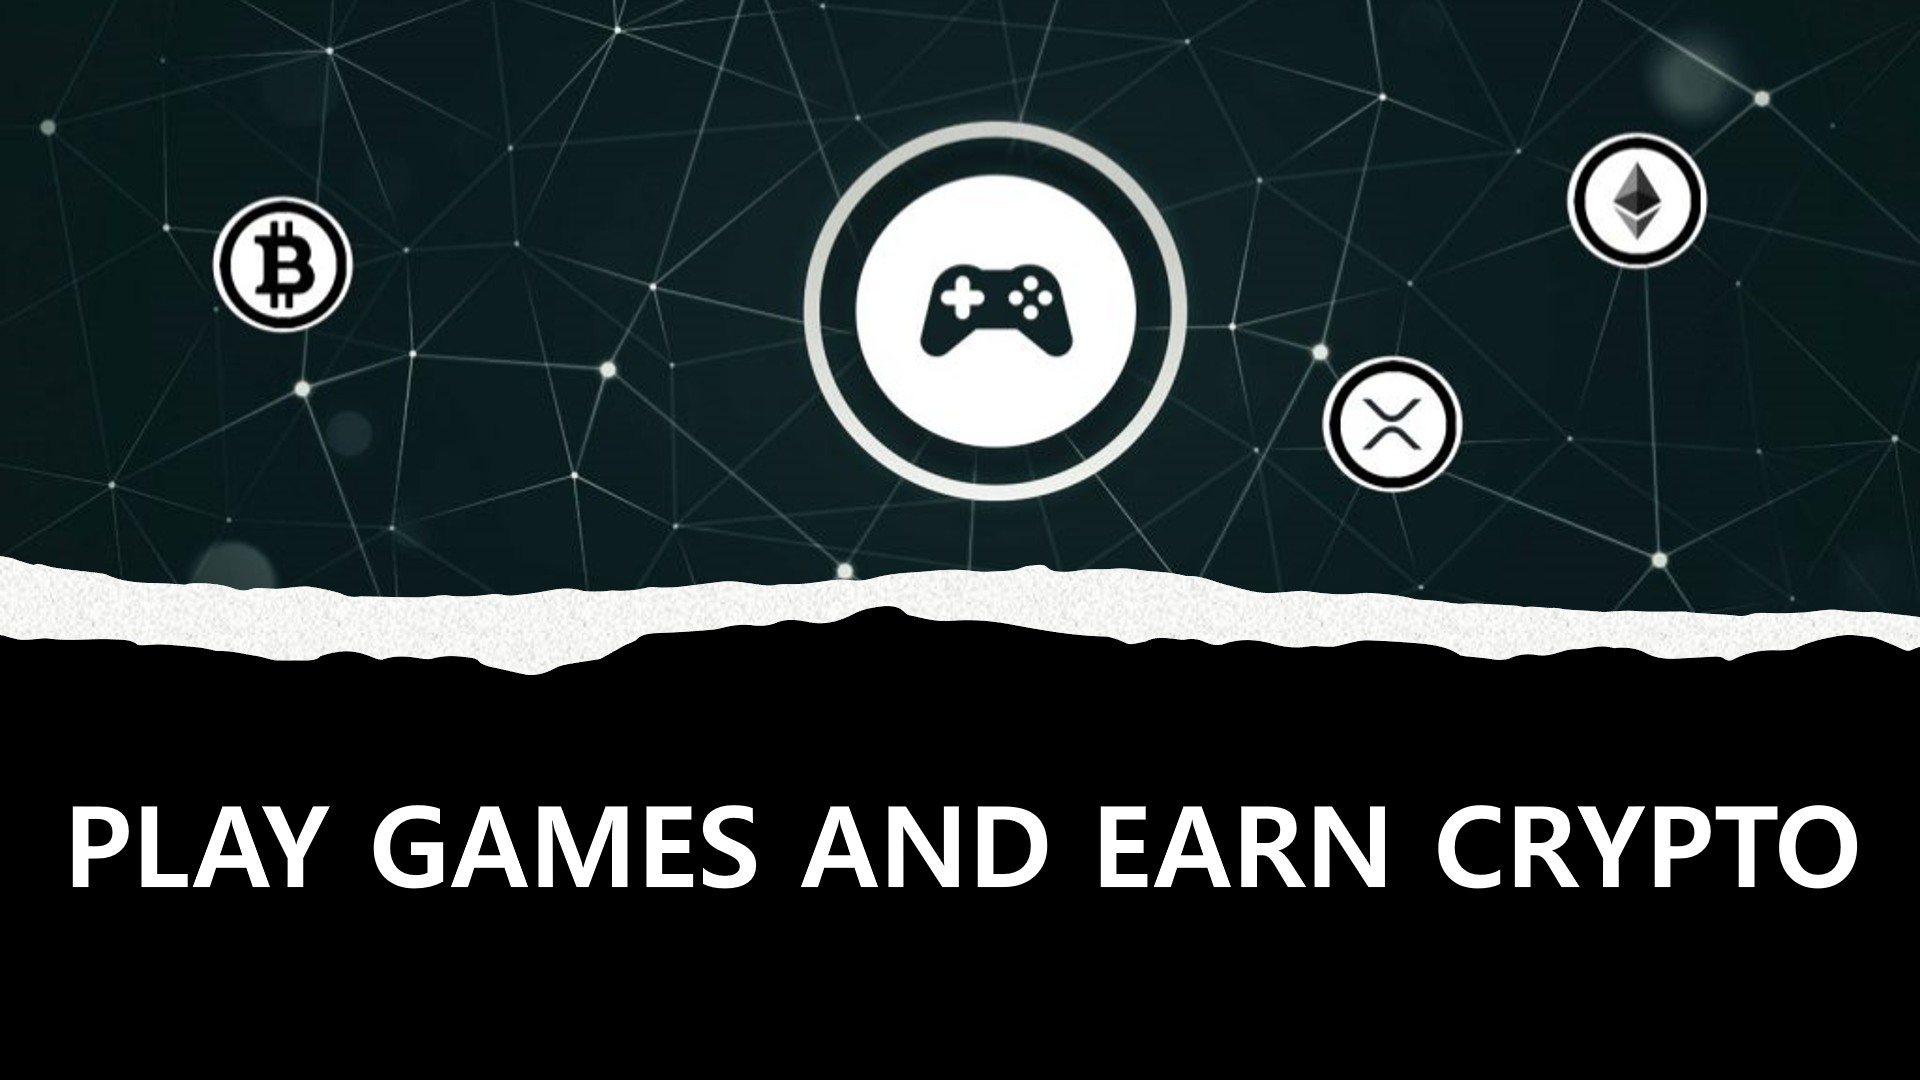 Play Games and Earn Crypto